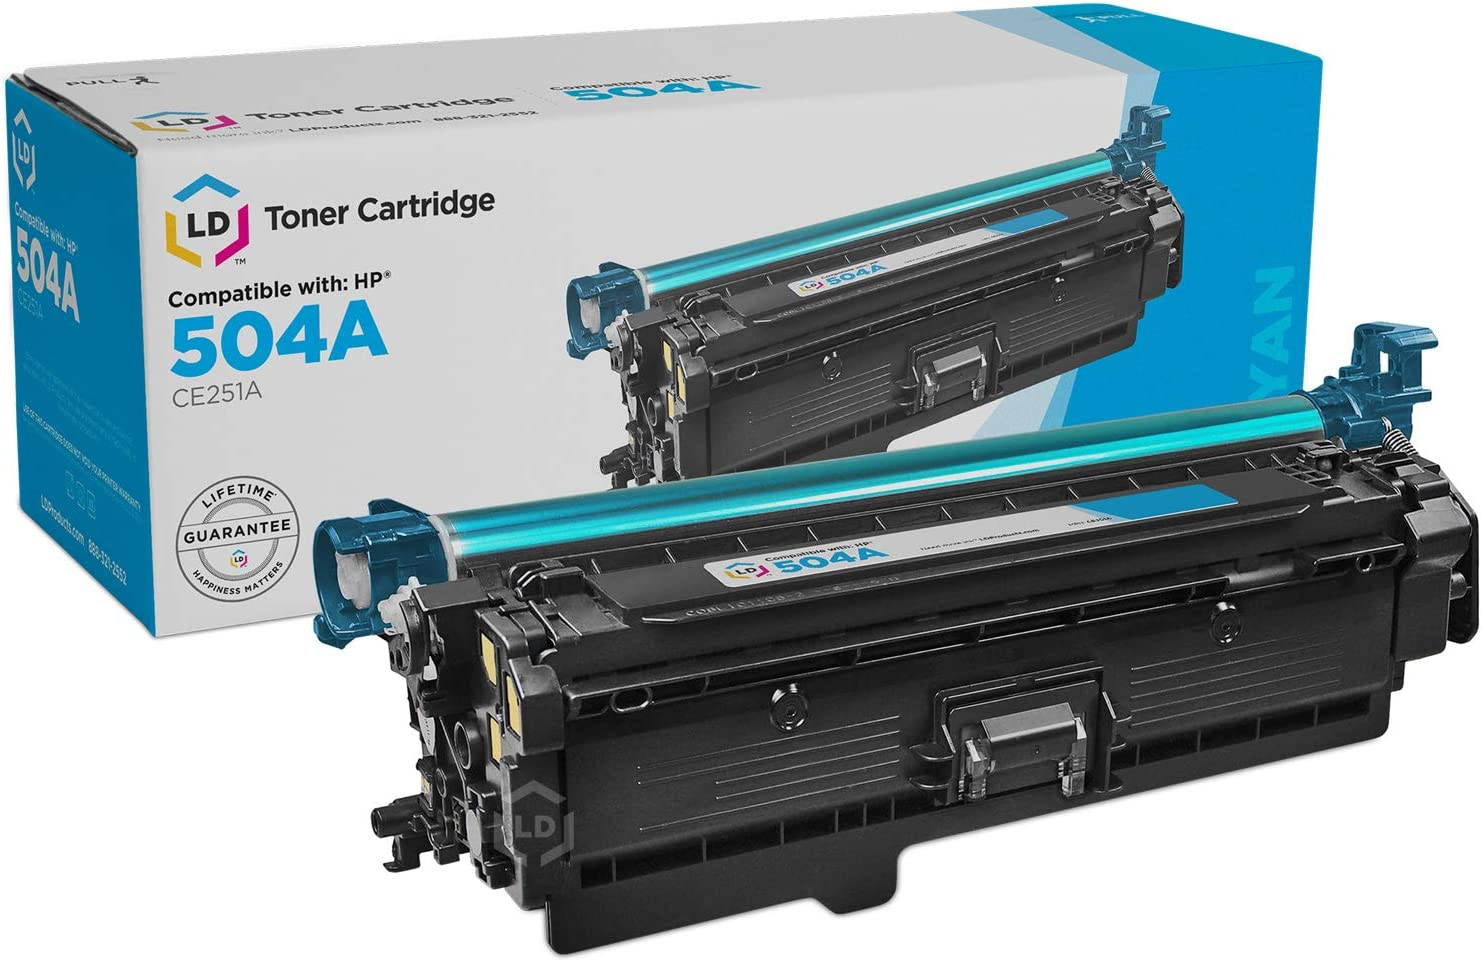 LD Remanufactured Toner Cartridge Replacement for HP 504A CE251A (Cyan)